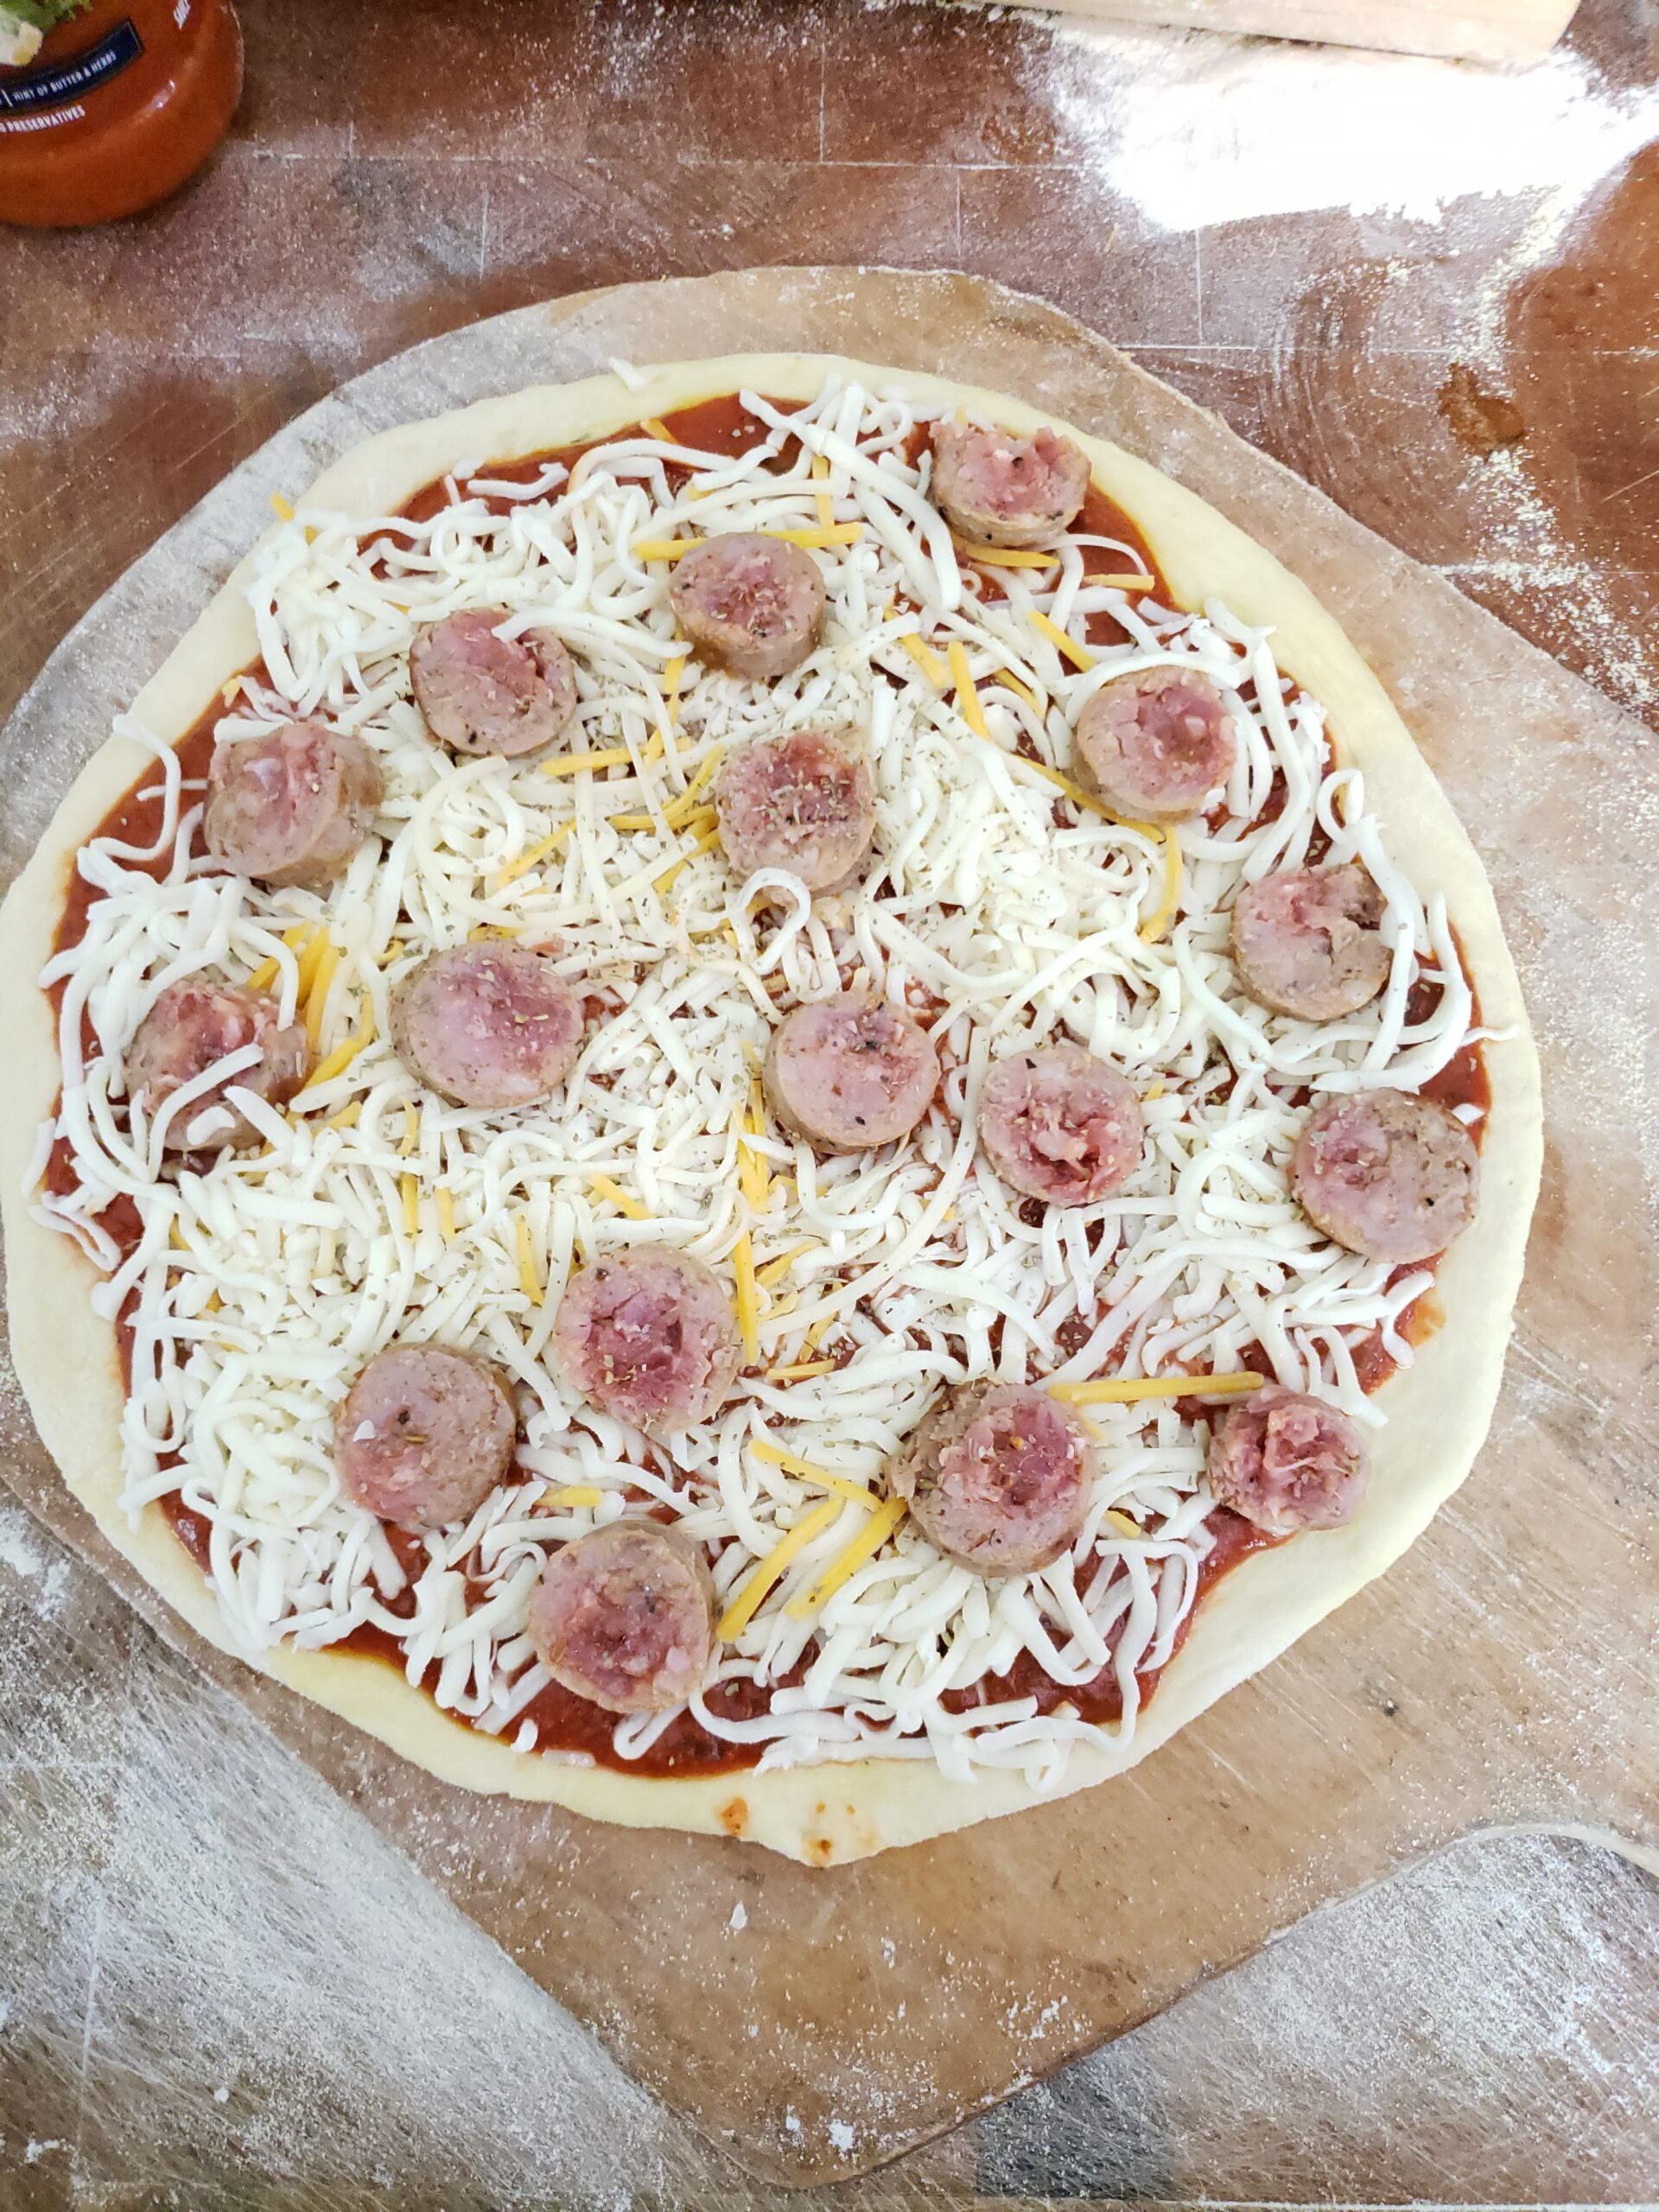 Making a pizza on wooden pizza paddle with cheese and sliced sausage links.